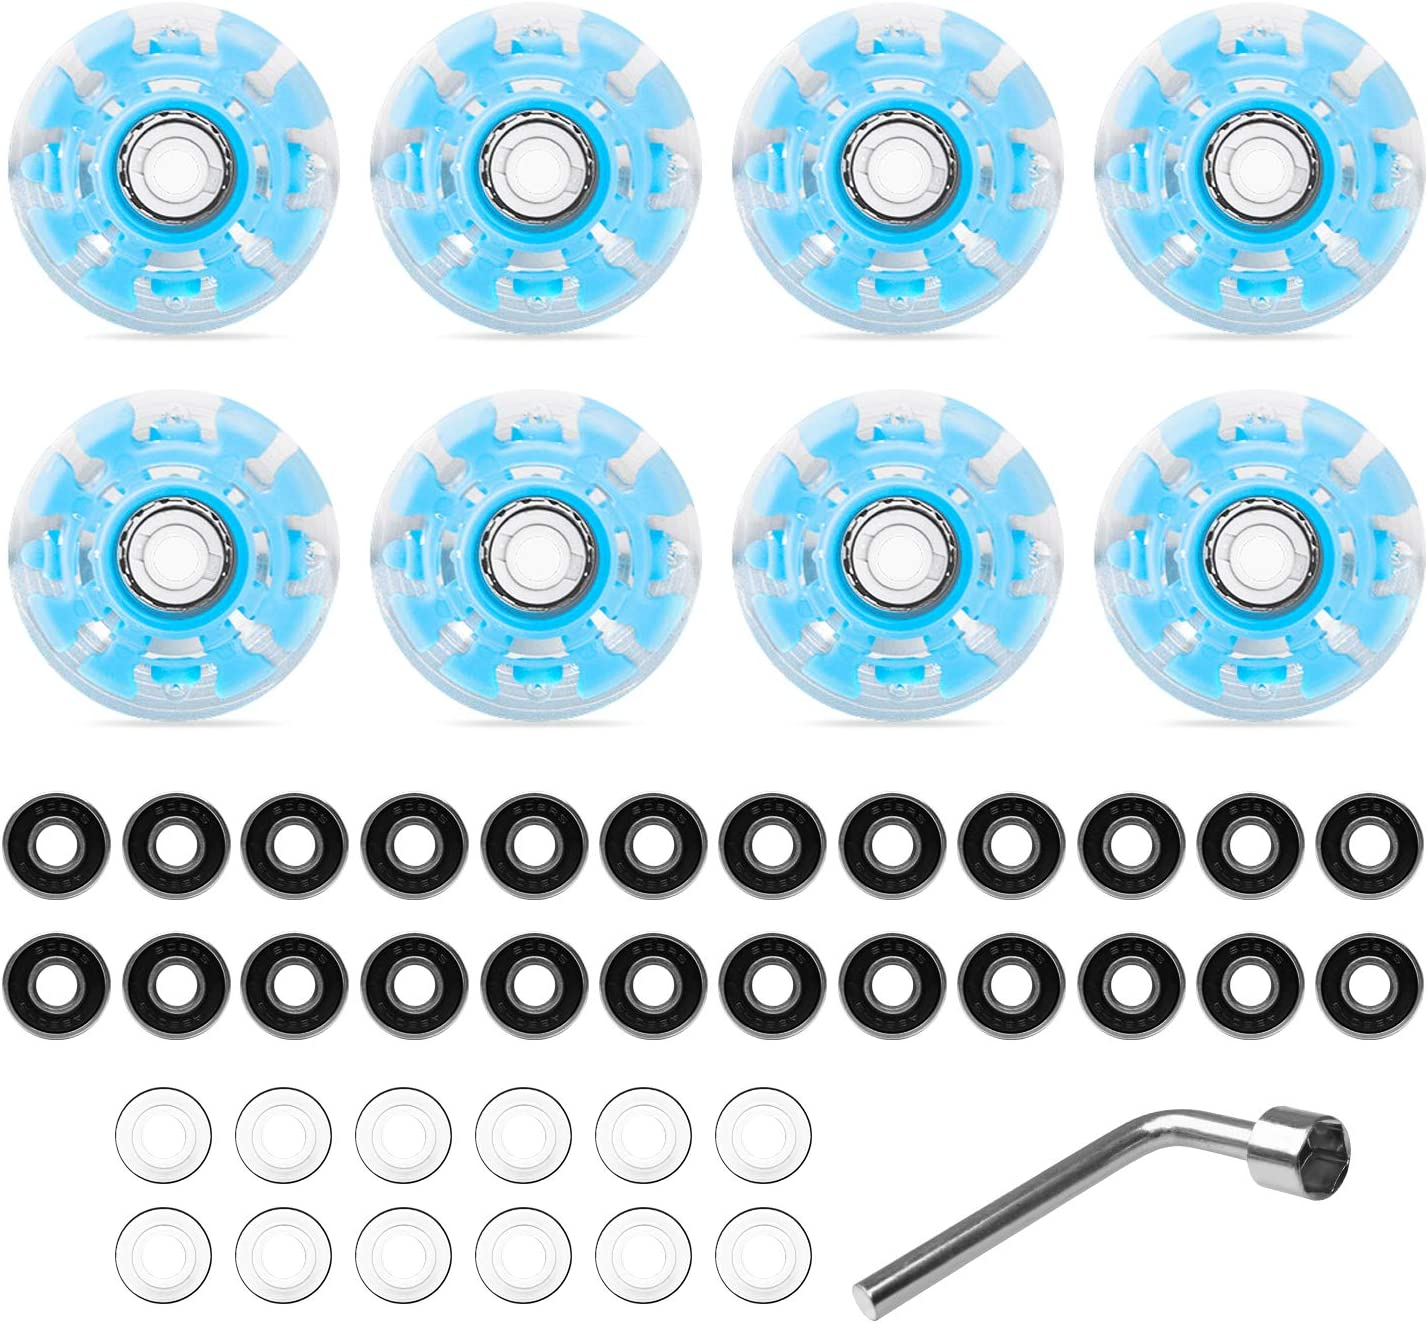 B/&A 8 Piece Roller Skate Wheels Luminous LED Light Up Skate Wheels with Skate Roller Bearings for Double Row Skating and Skateboard 32 x 58 mm Blue